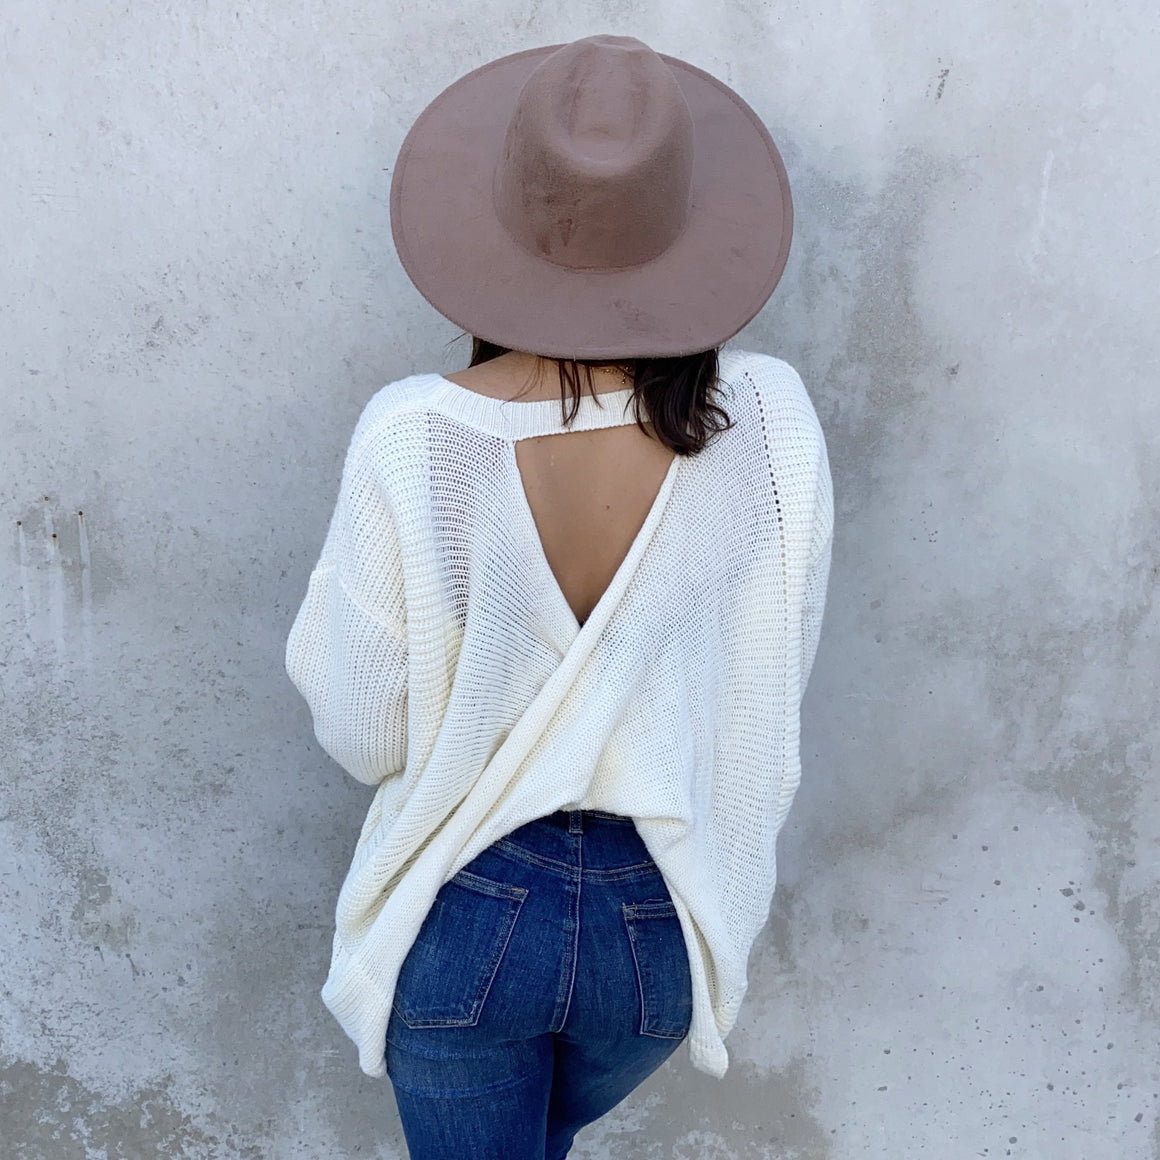 Give It A Twist Knit Sweater In Ivory - Dainty Hooligan